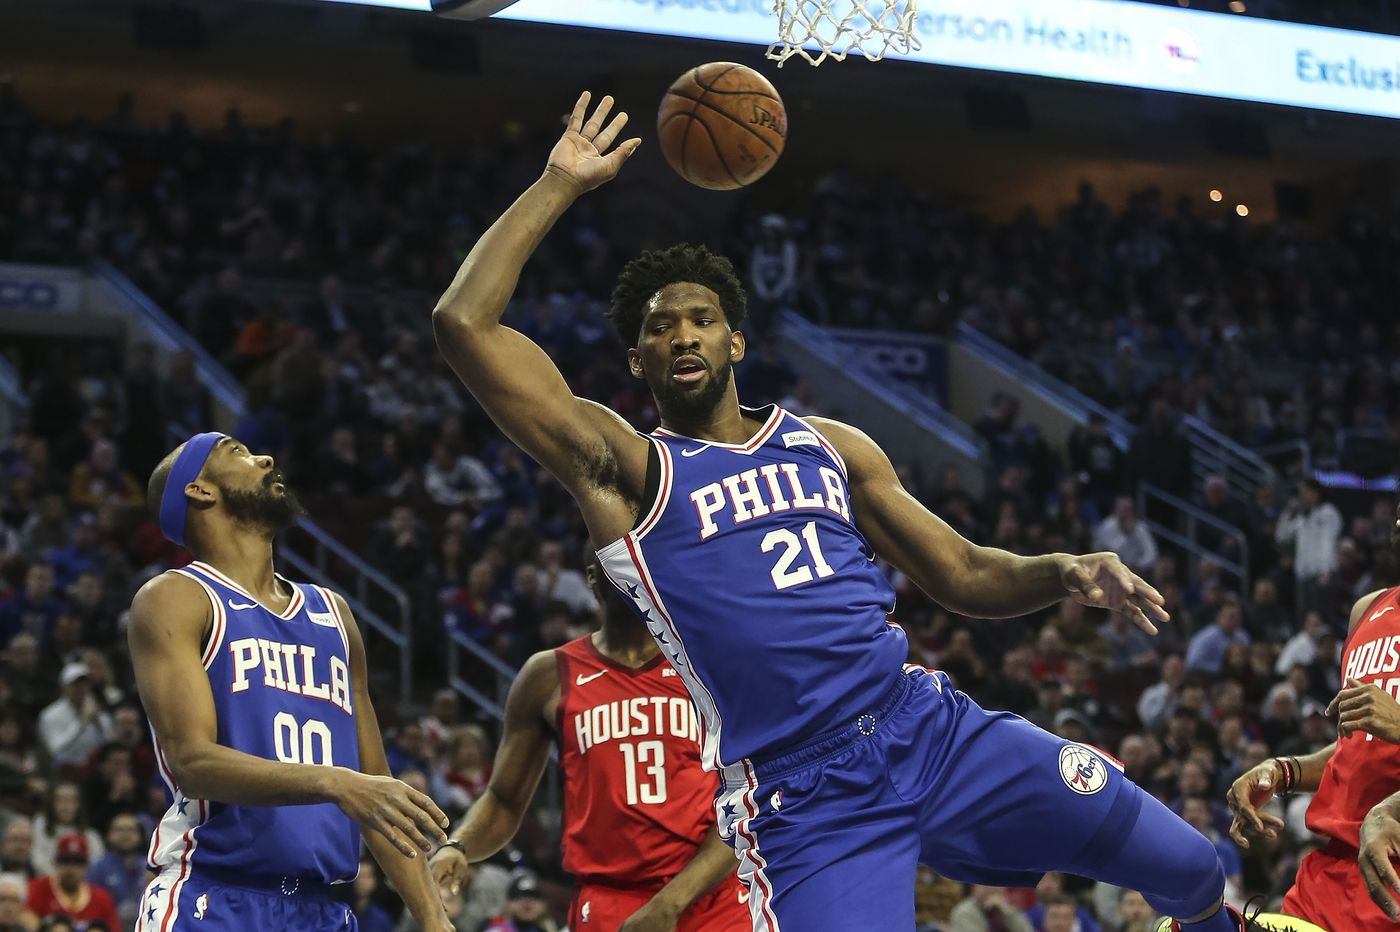 Sixers Podcast: Team must protect Joel Embiid from himself and decide if Corey Brewer is a roster fit